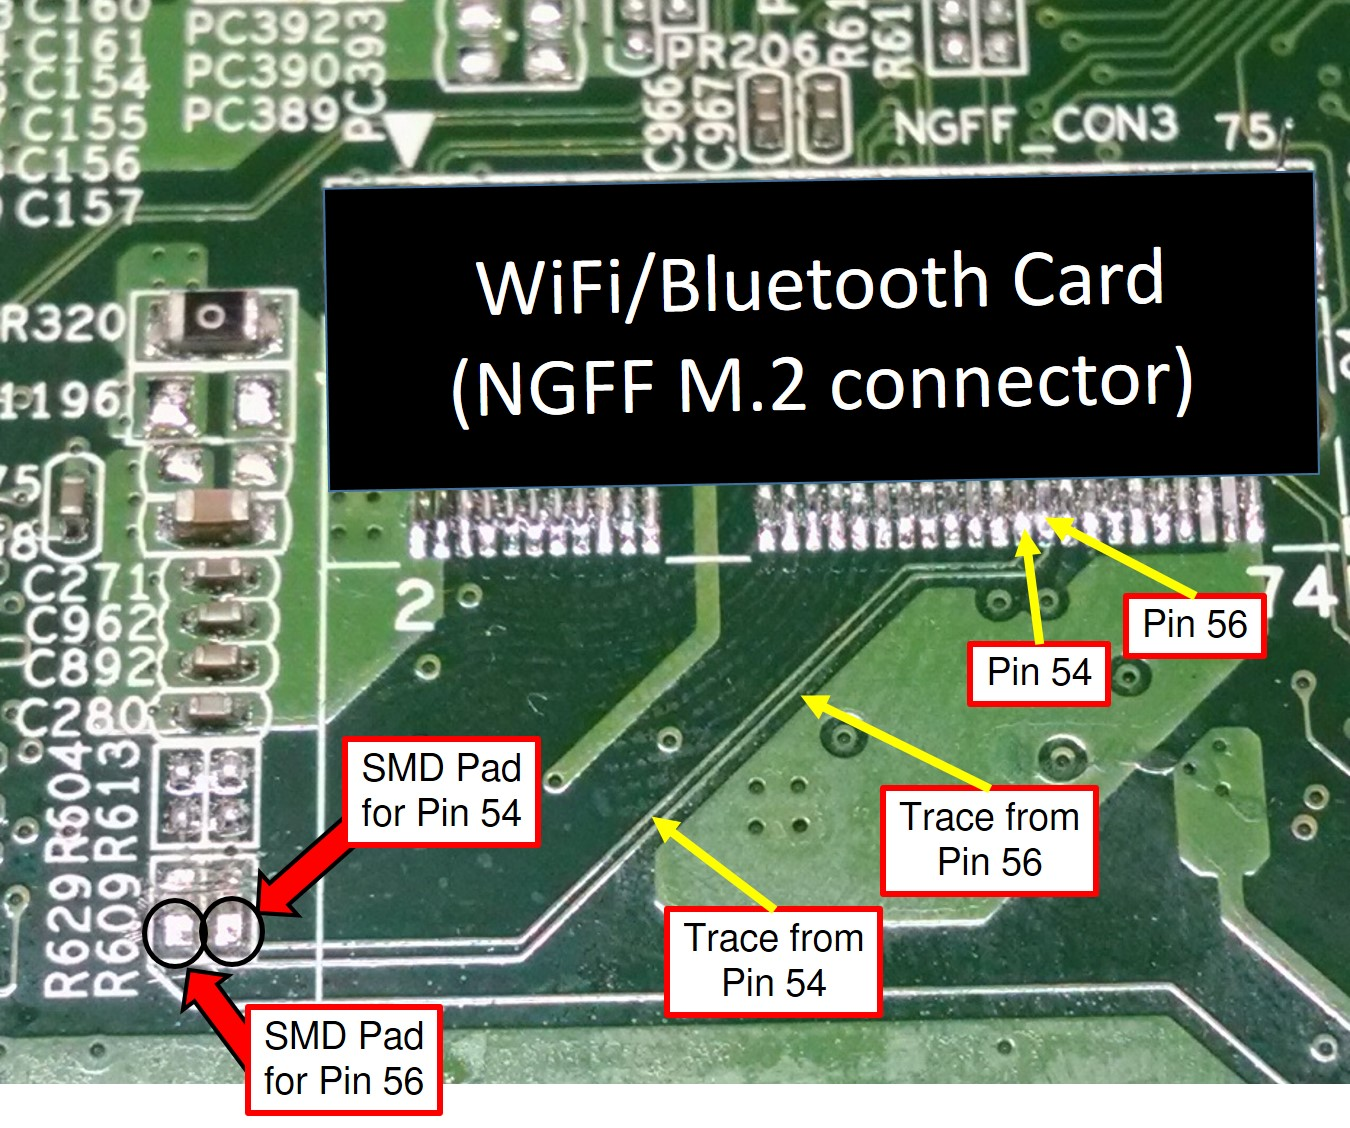 Hard Not Soft Kill Switches Purism Computer Microphone Electronic Circuit Diagram Librem 13 Wifi Hks